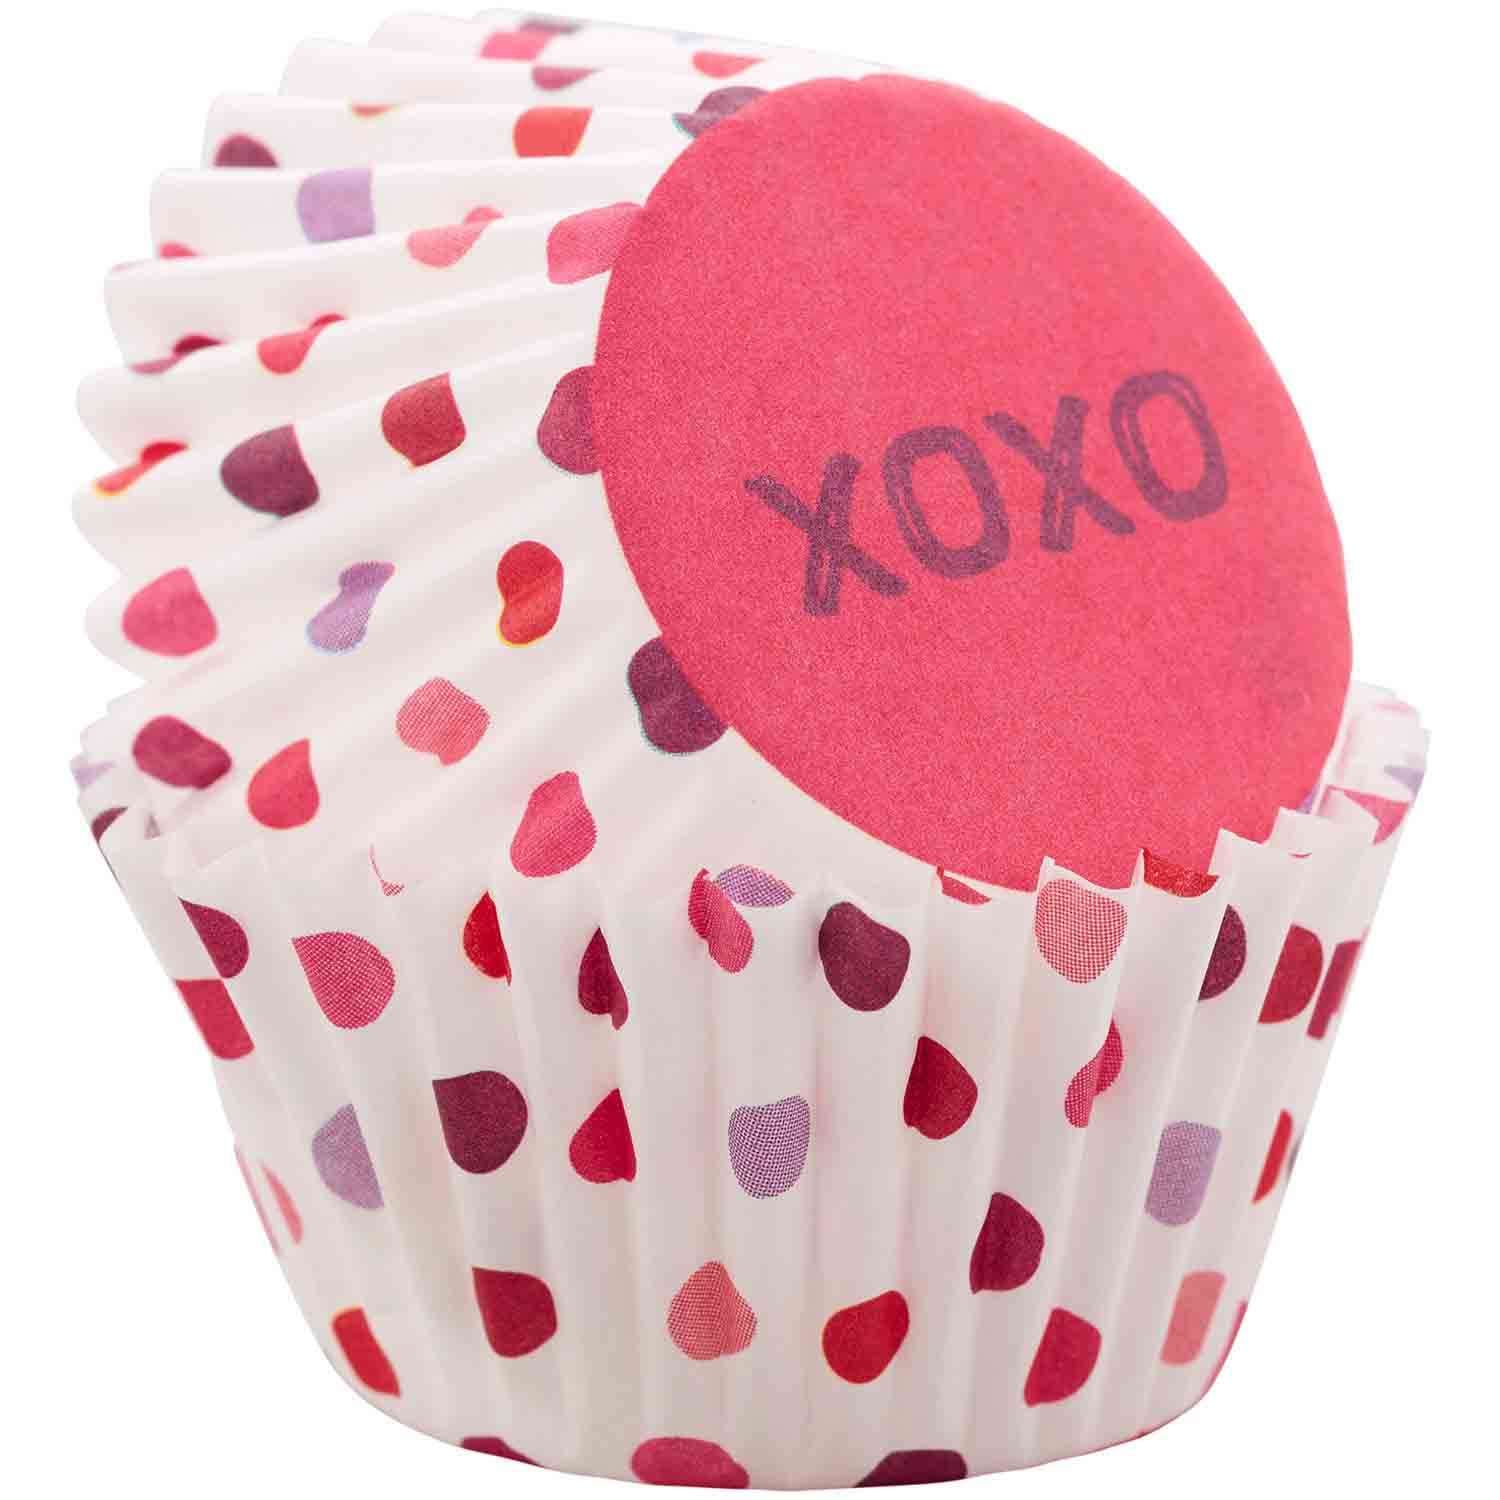 XOXO Mini Baking Cups